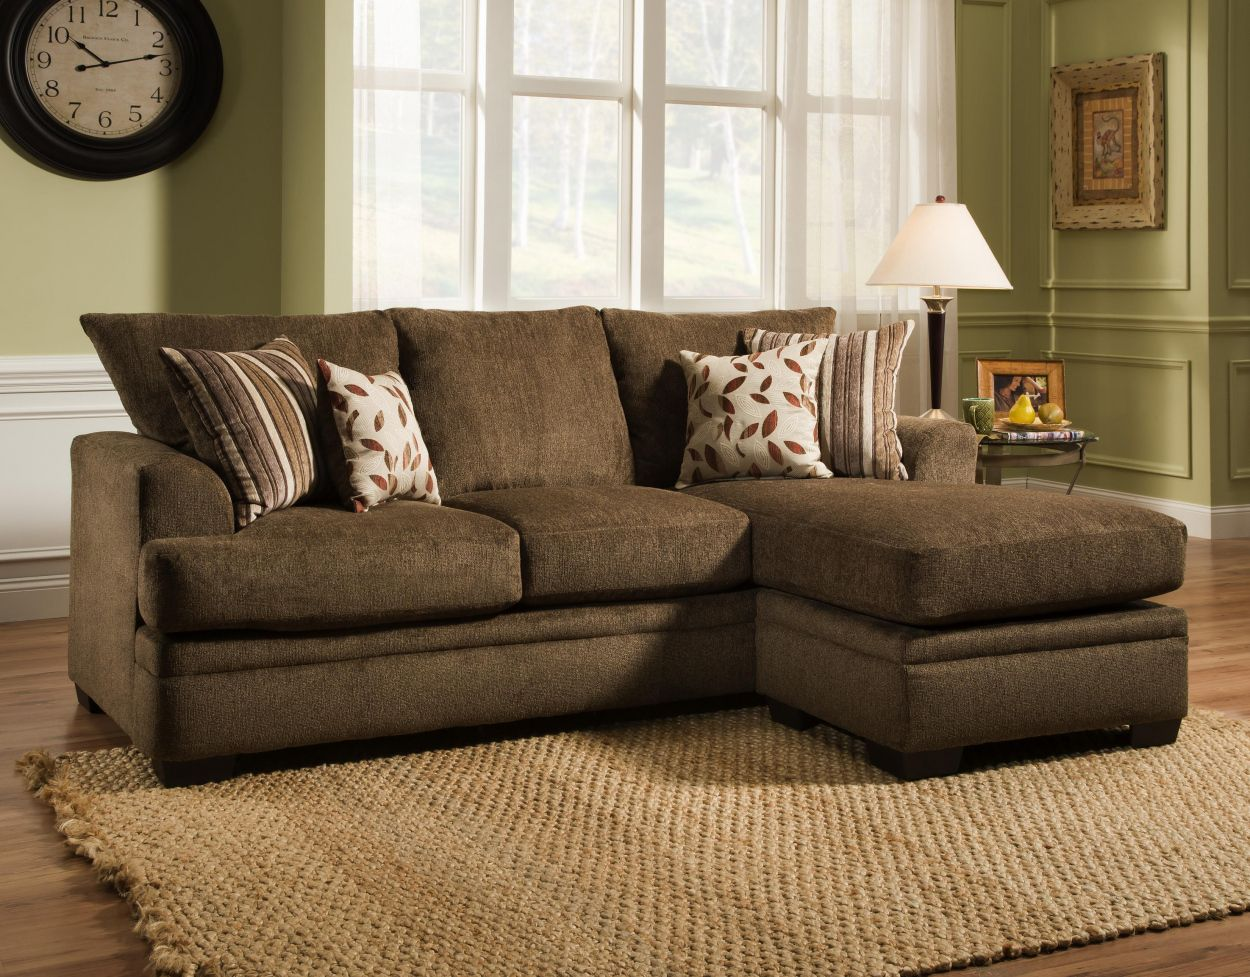 Shop For The American Furniture 3650 Sofa Chaise At Becku0027s Furniture   Your  Sacramento, Rancho Cordova, Roseville, California Furniture U0026 Mattress Store